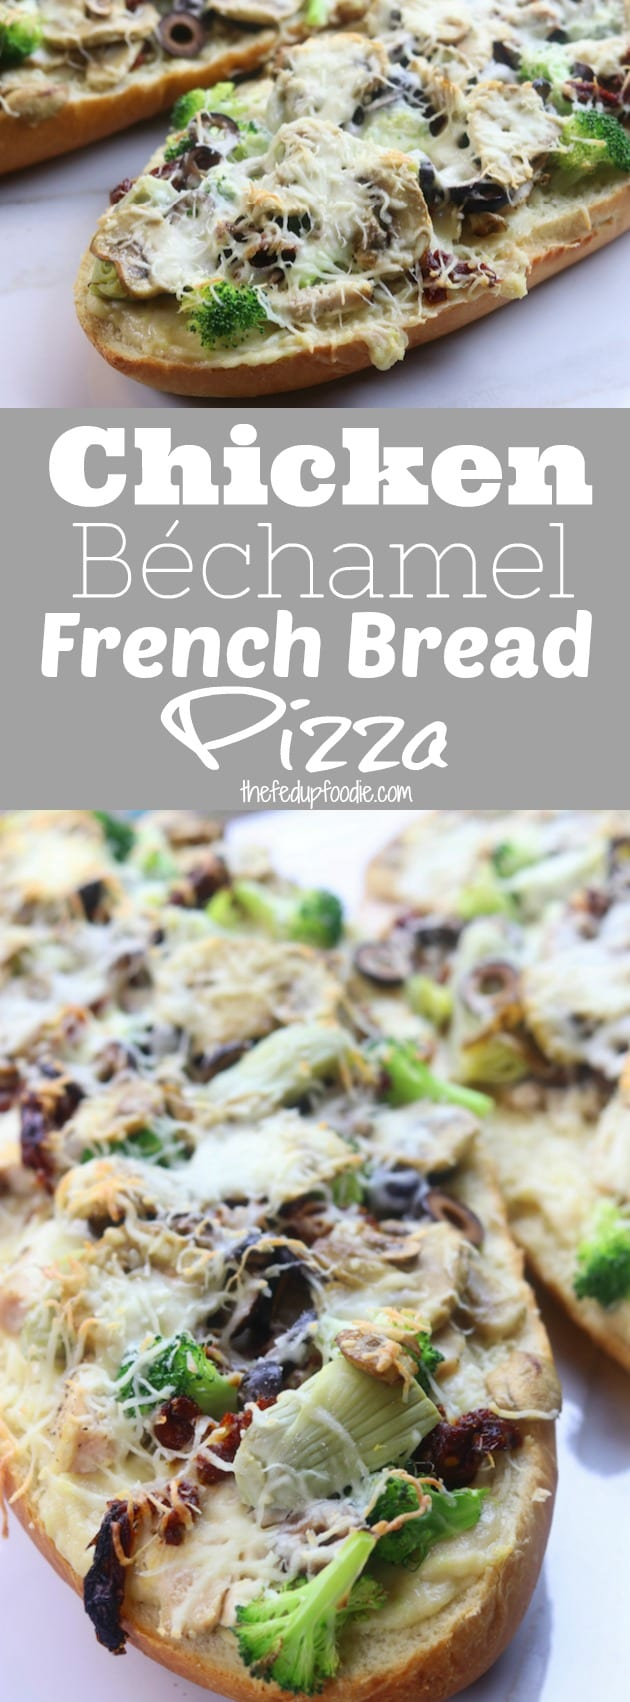 Chicken Béchamel French Bread Pizza is a quick and easy family favorite recipe. One of the best homemade pizzas that is perfect with rotisserie chicken or leftover Thanksgiving turkey. Simple ingredients and takes only minutes to bake. #pizza #easydinner #frenchbread https://www.thefedupfoodie.com